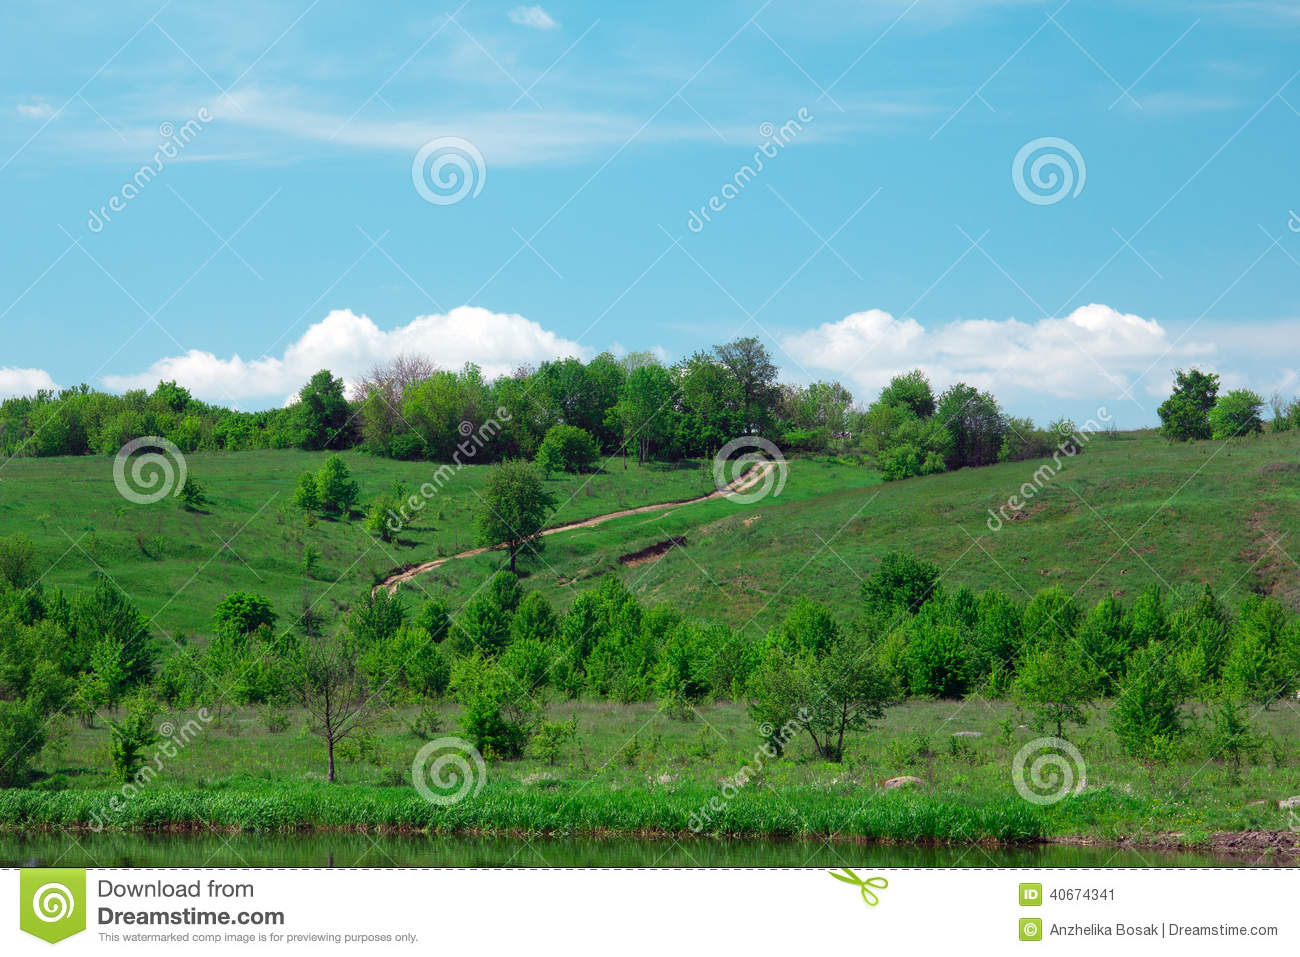 Landscape of a green grassy hills, valley, trees and blue sky an